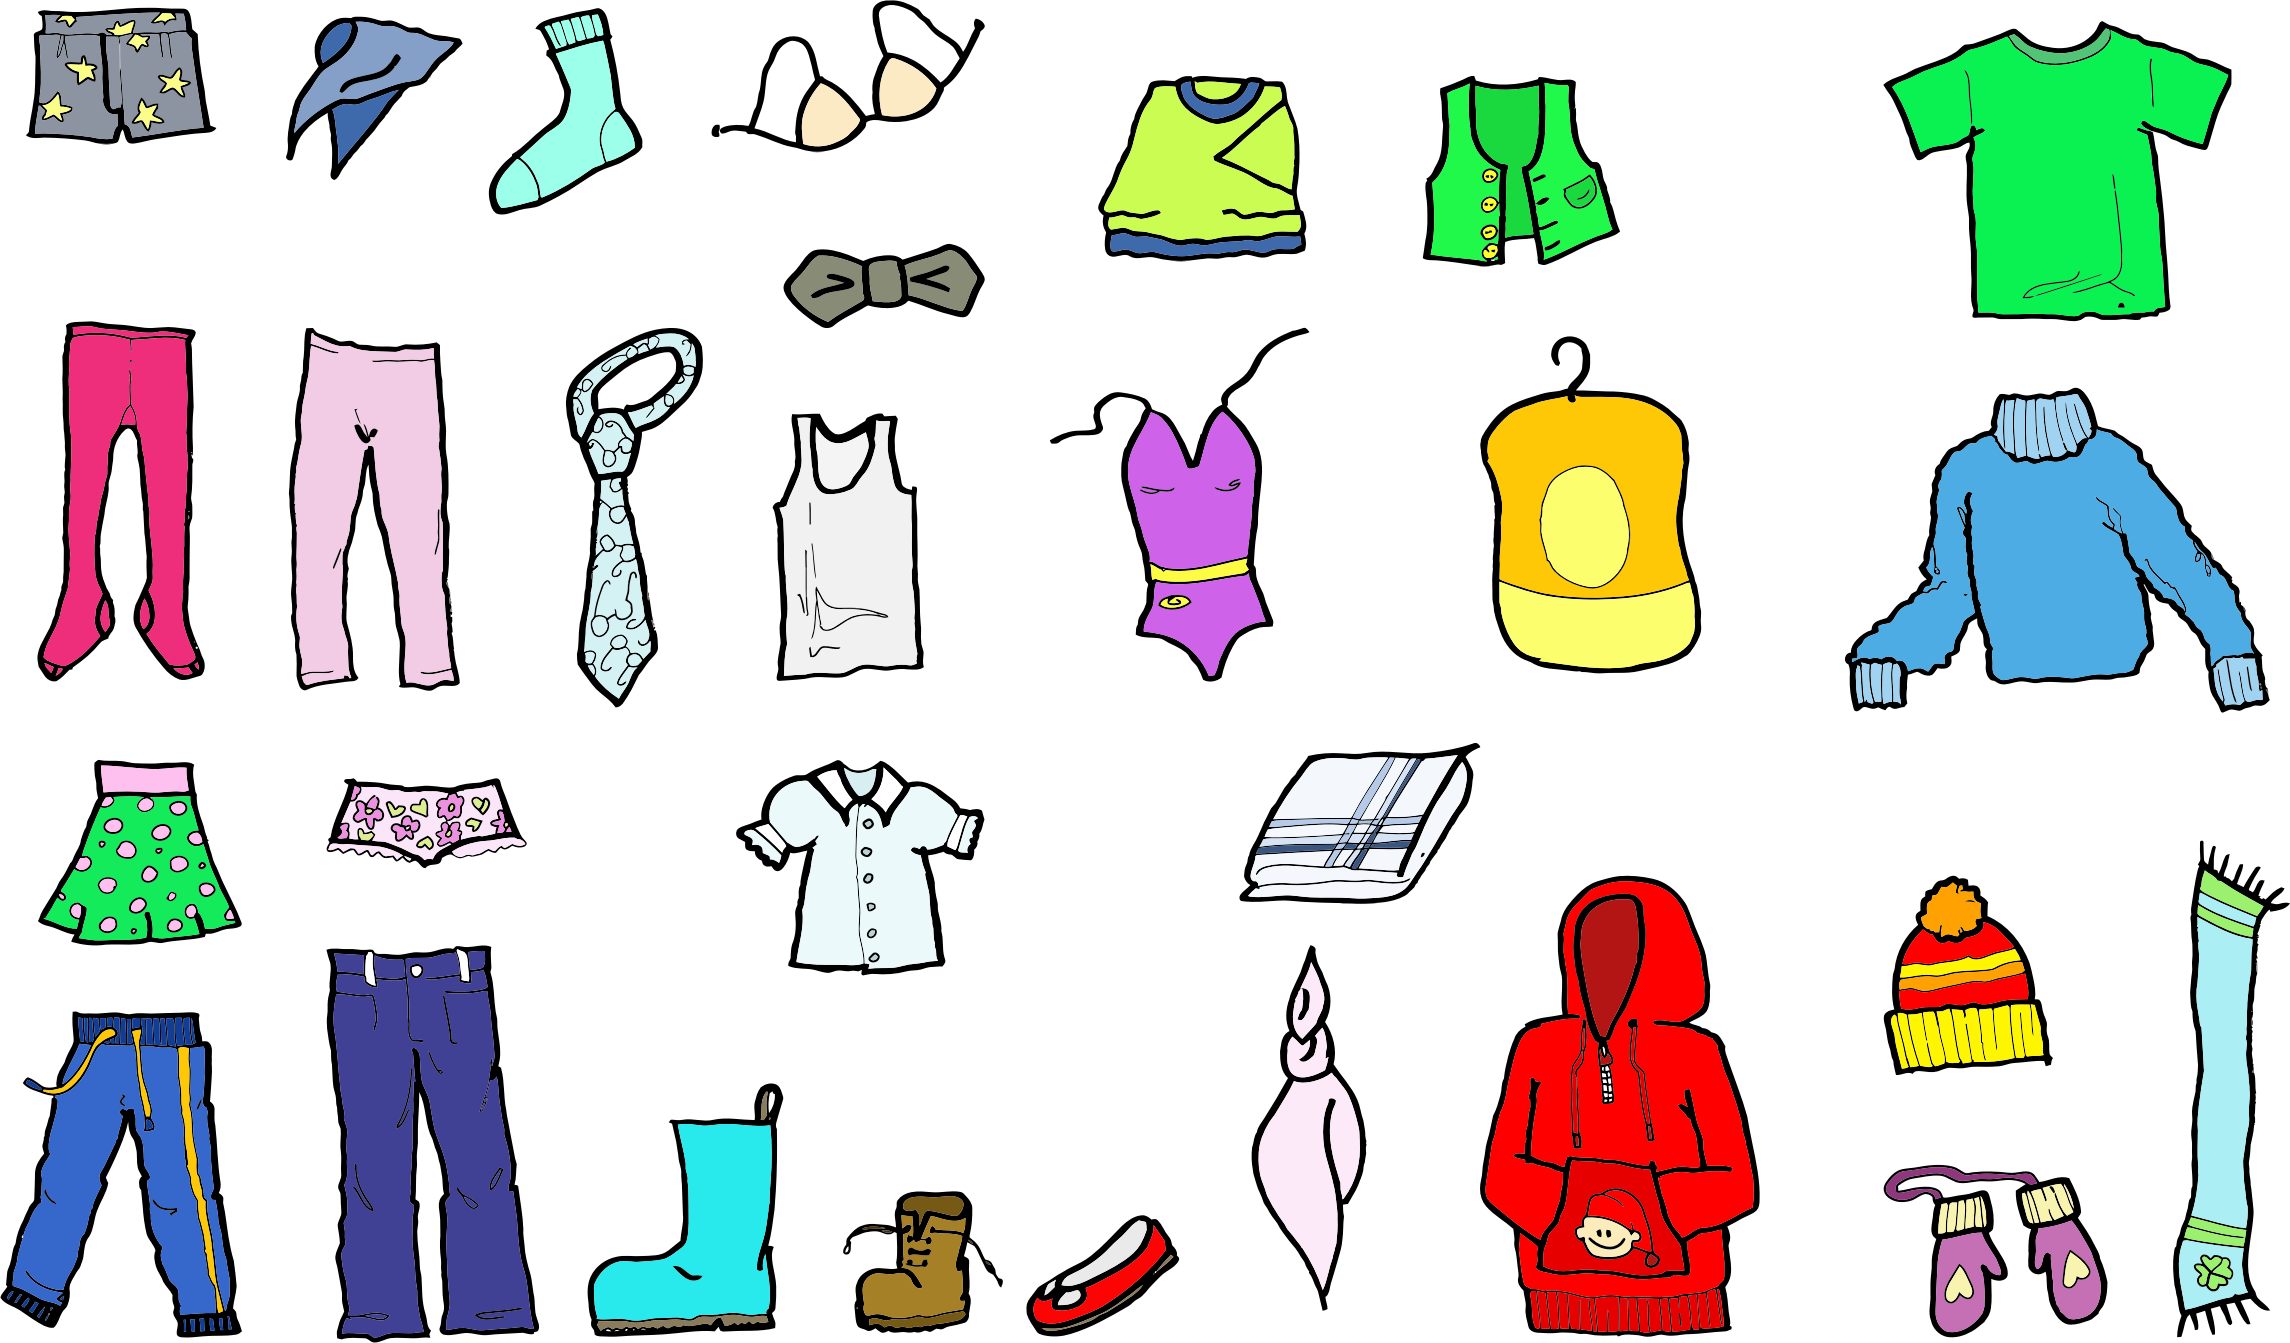 https://openclipart.org/image/2400px/svg_to_png/221267/Clothing.png